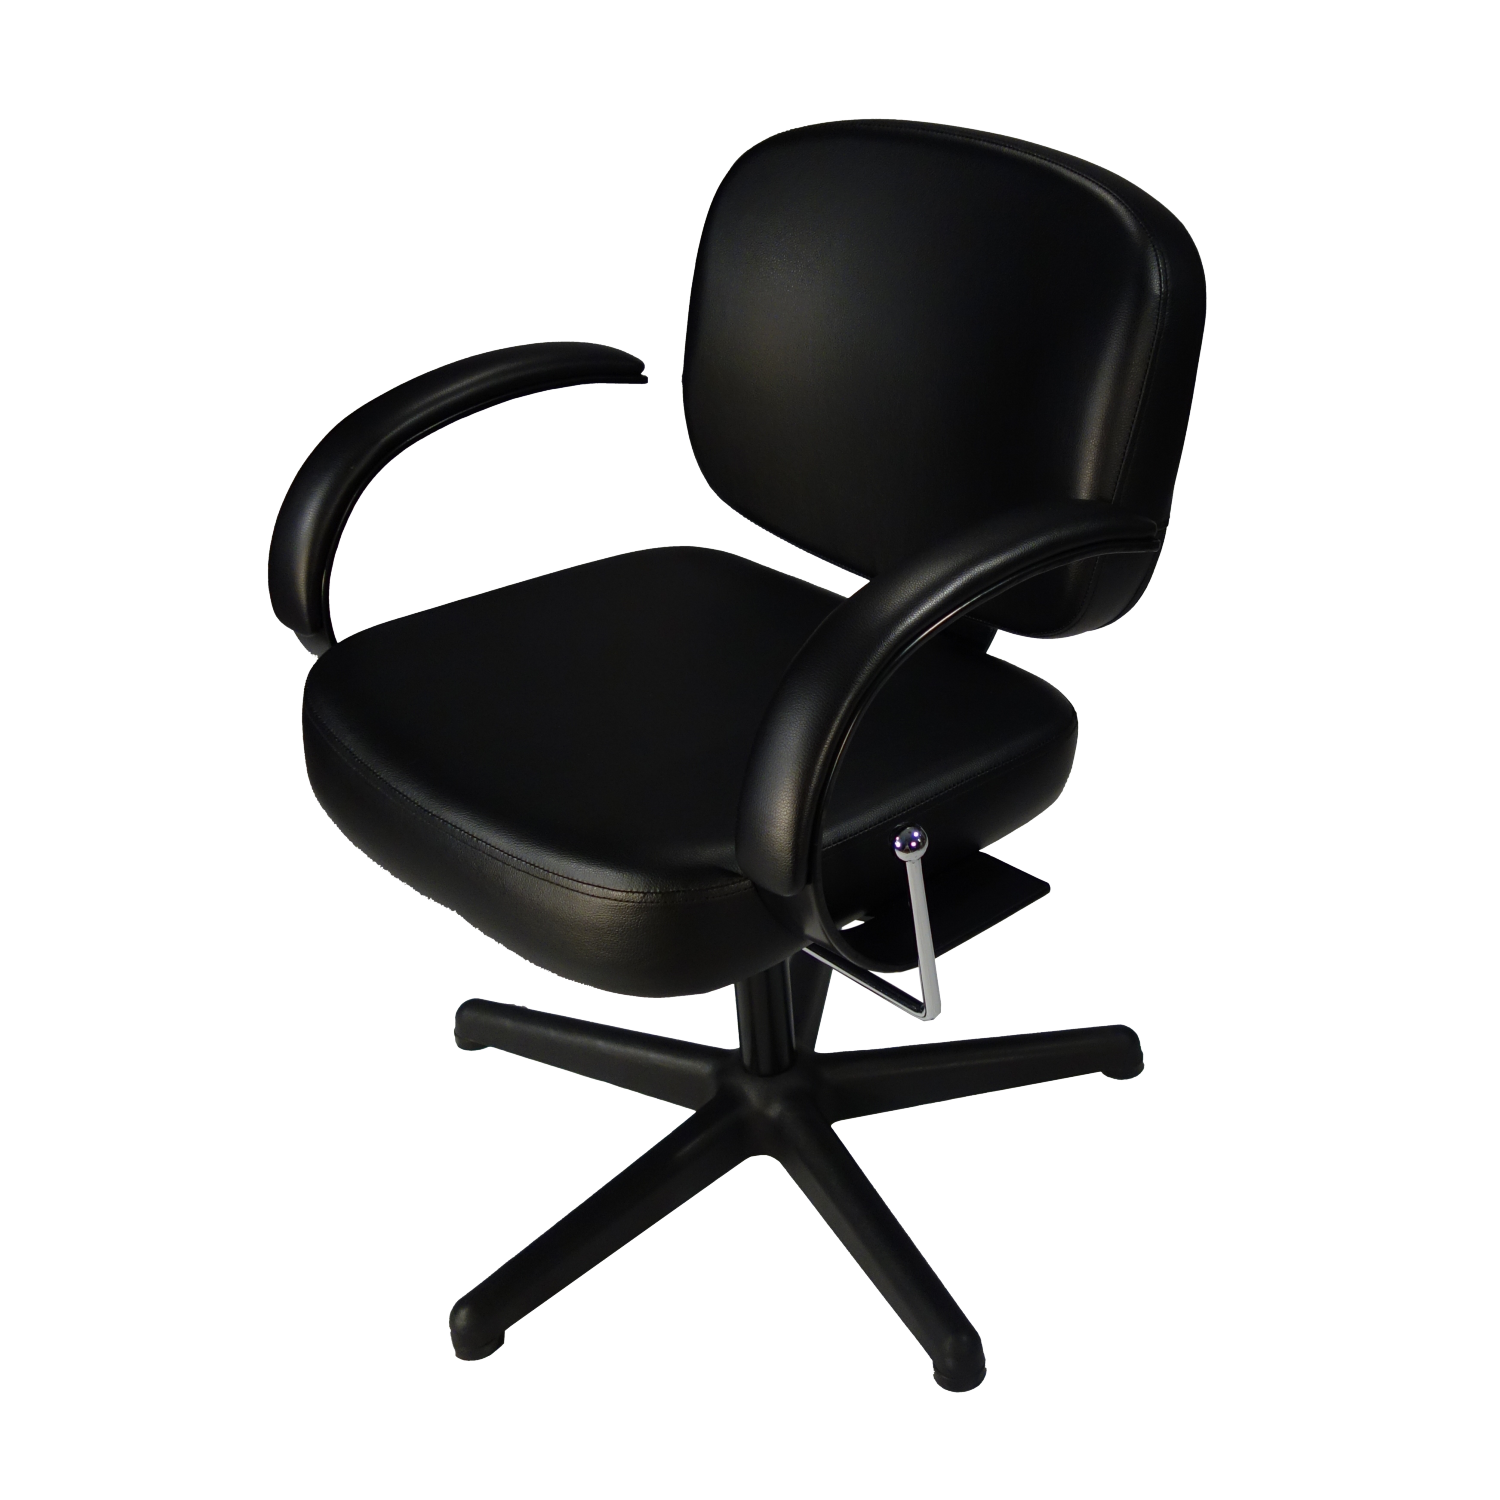 Layla Black Shampoo Chair at CosmoProf Equipment